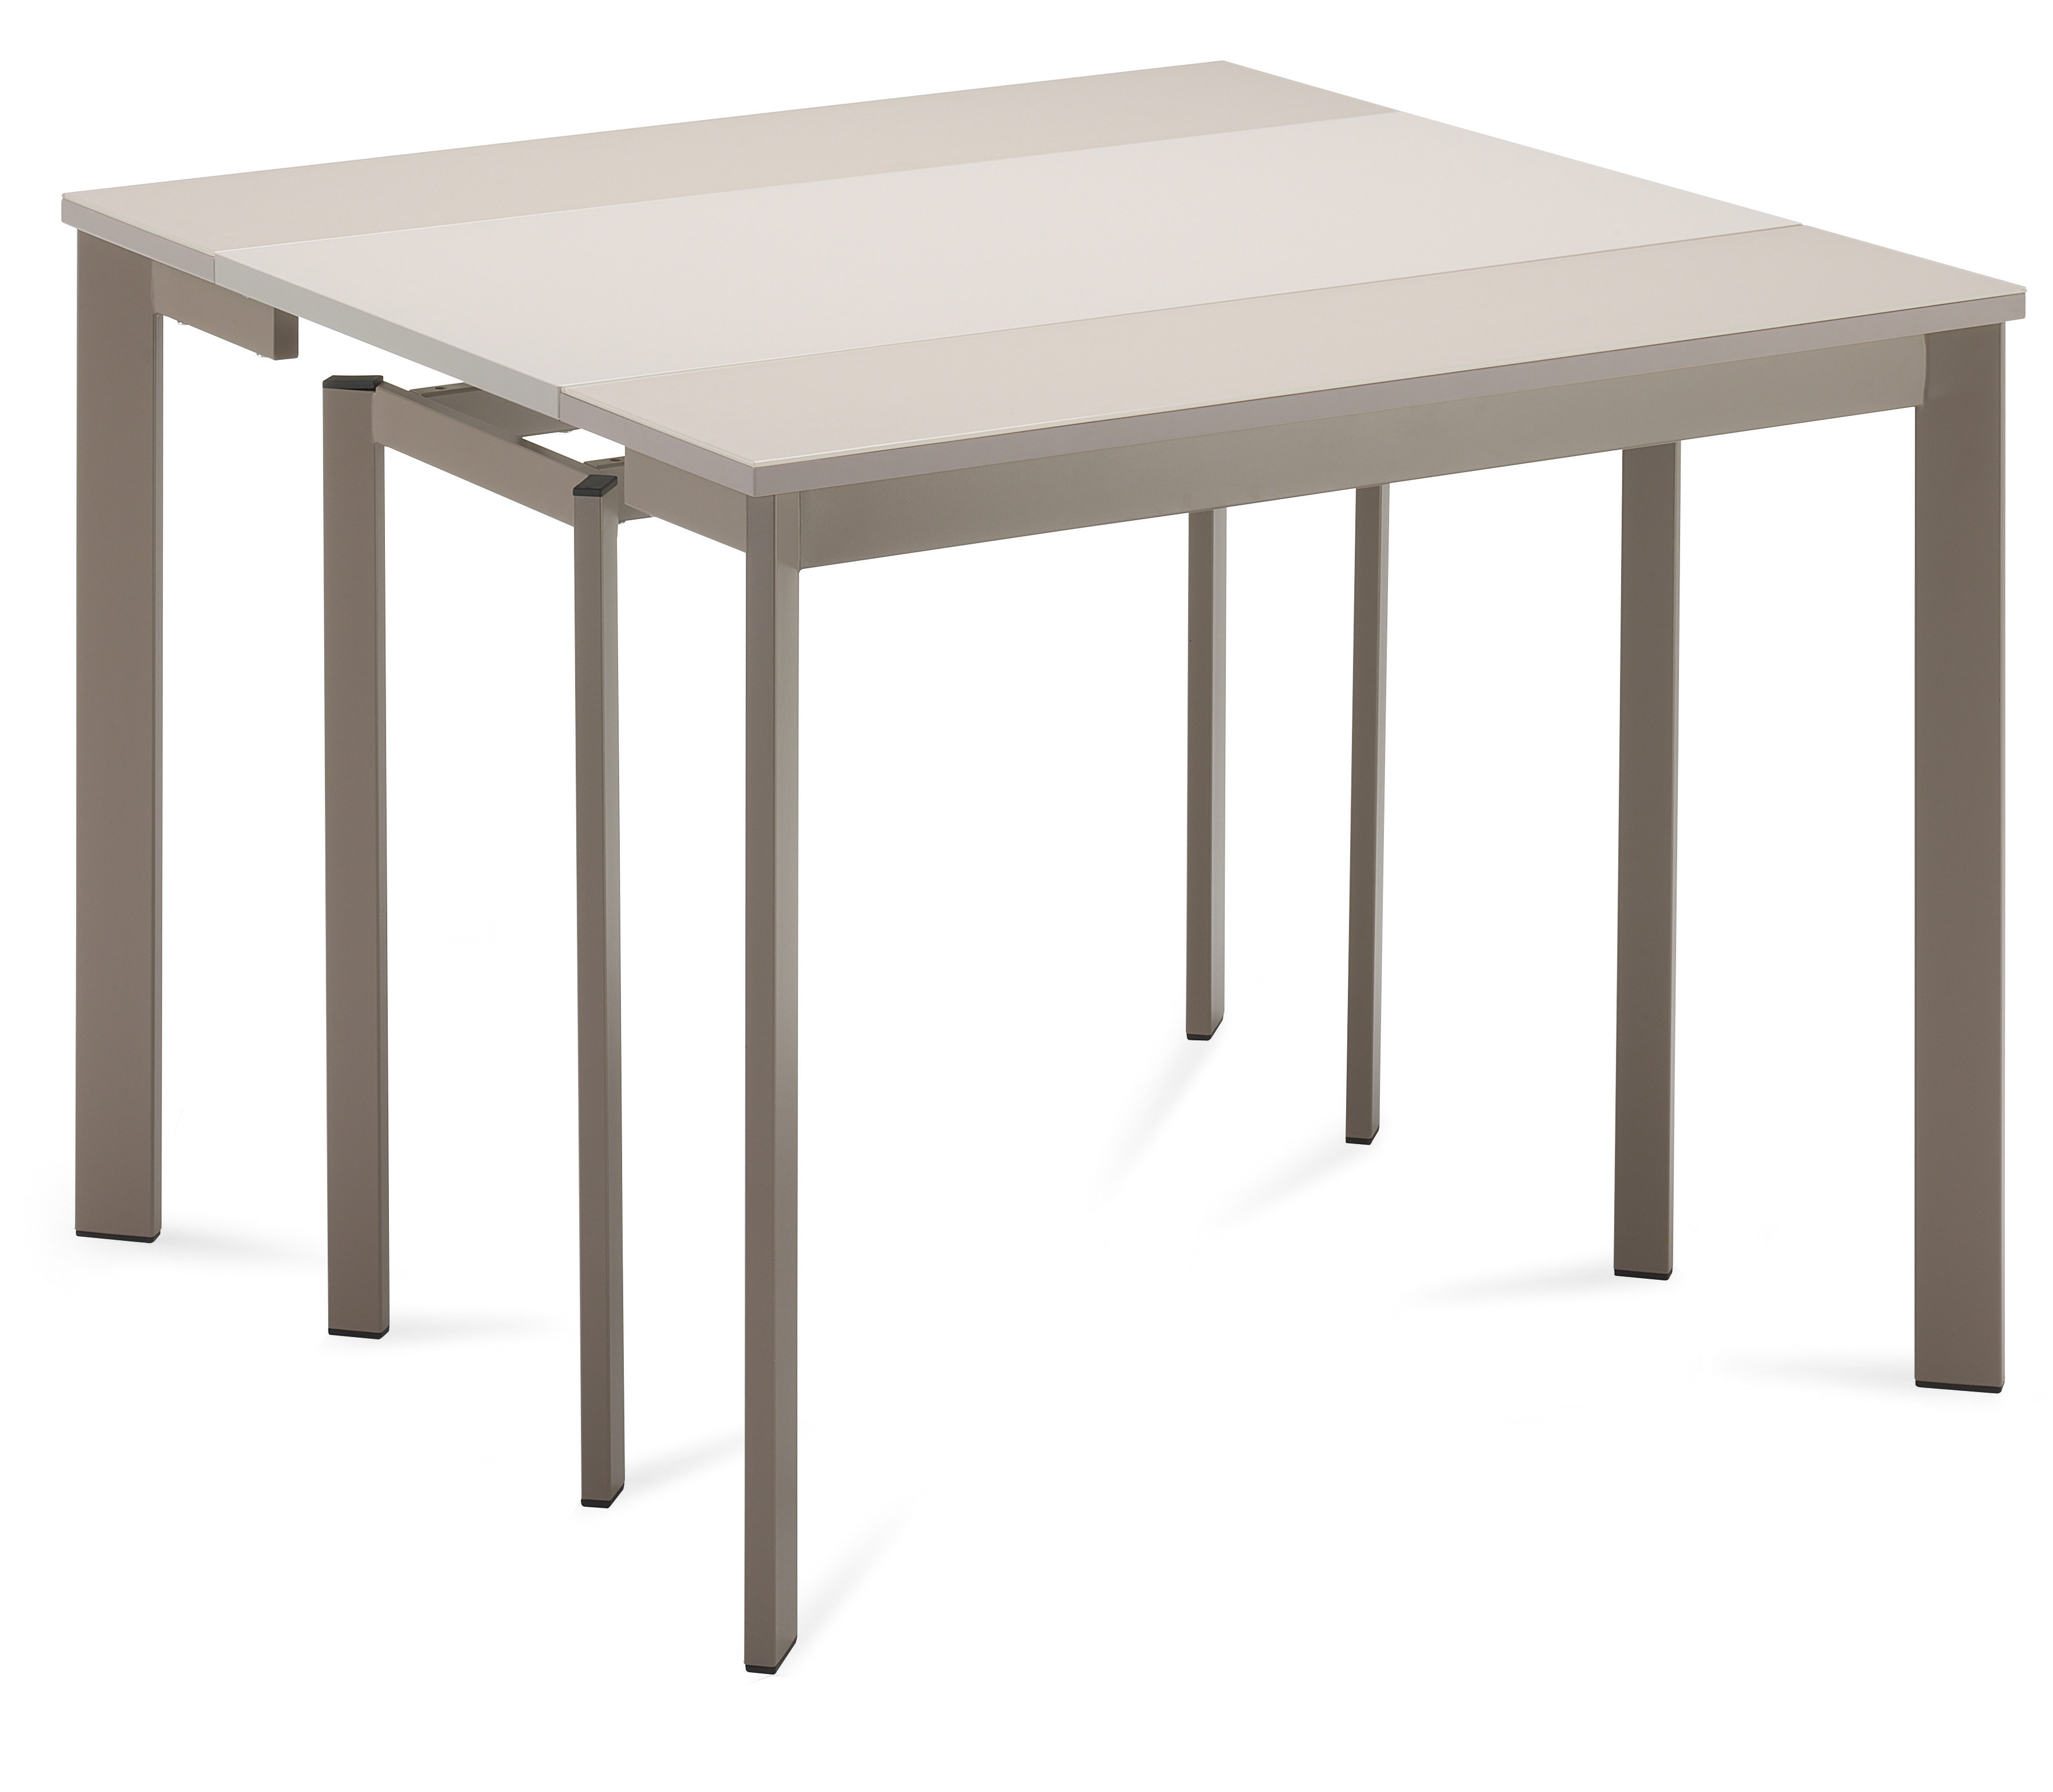 CONDOR CONSOLE / EXTENDING DINING TABLE-30897